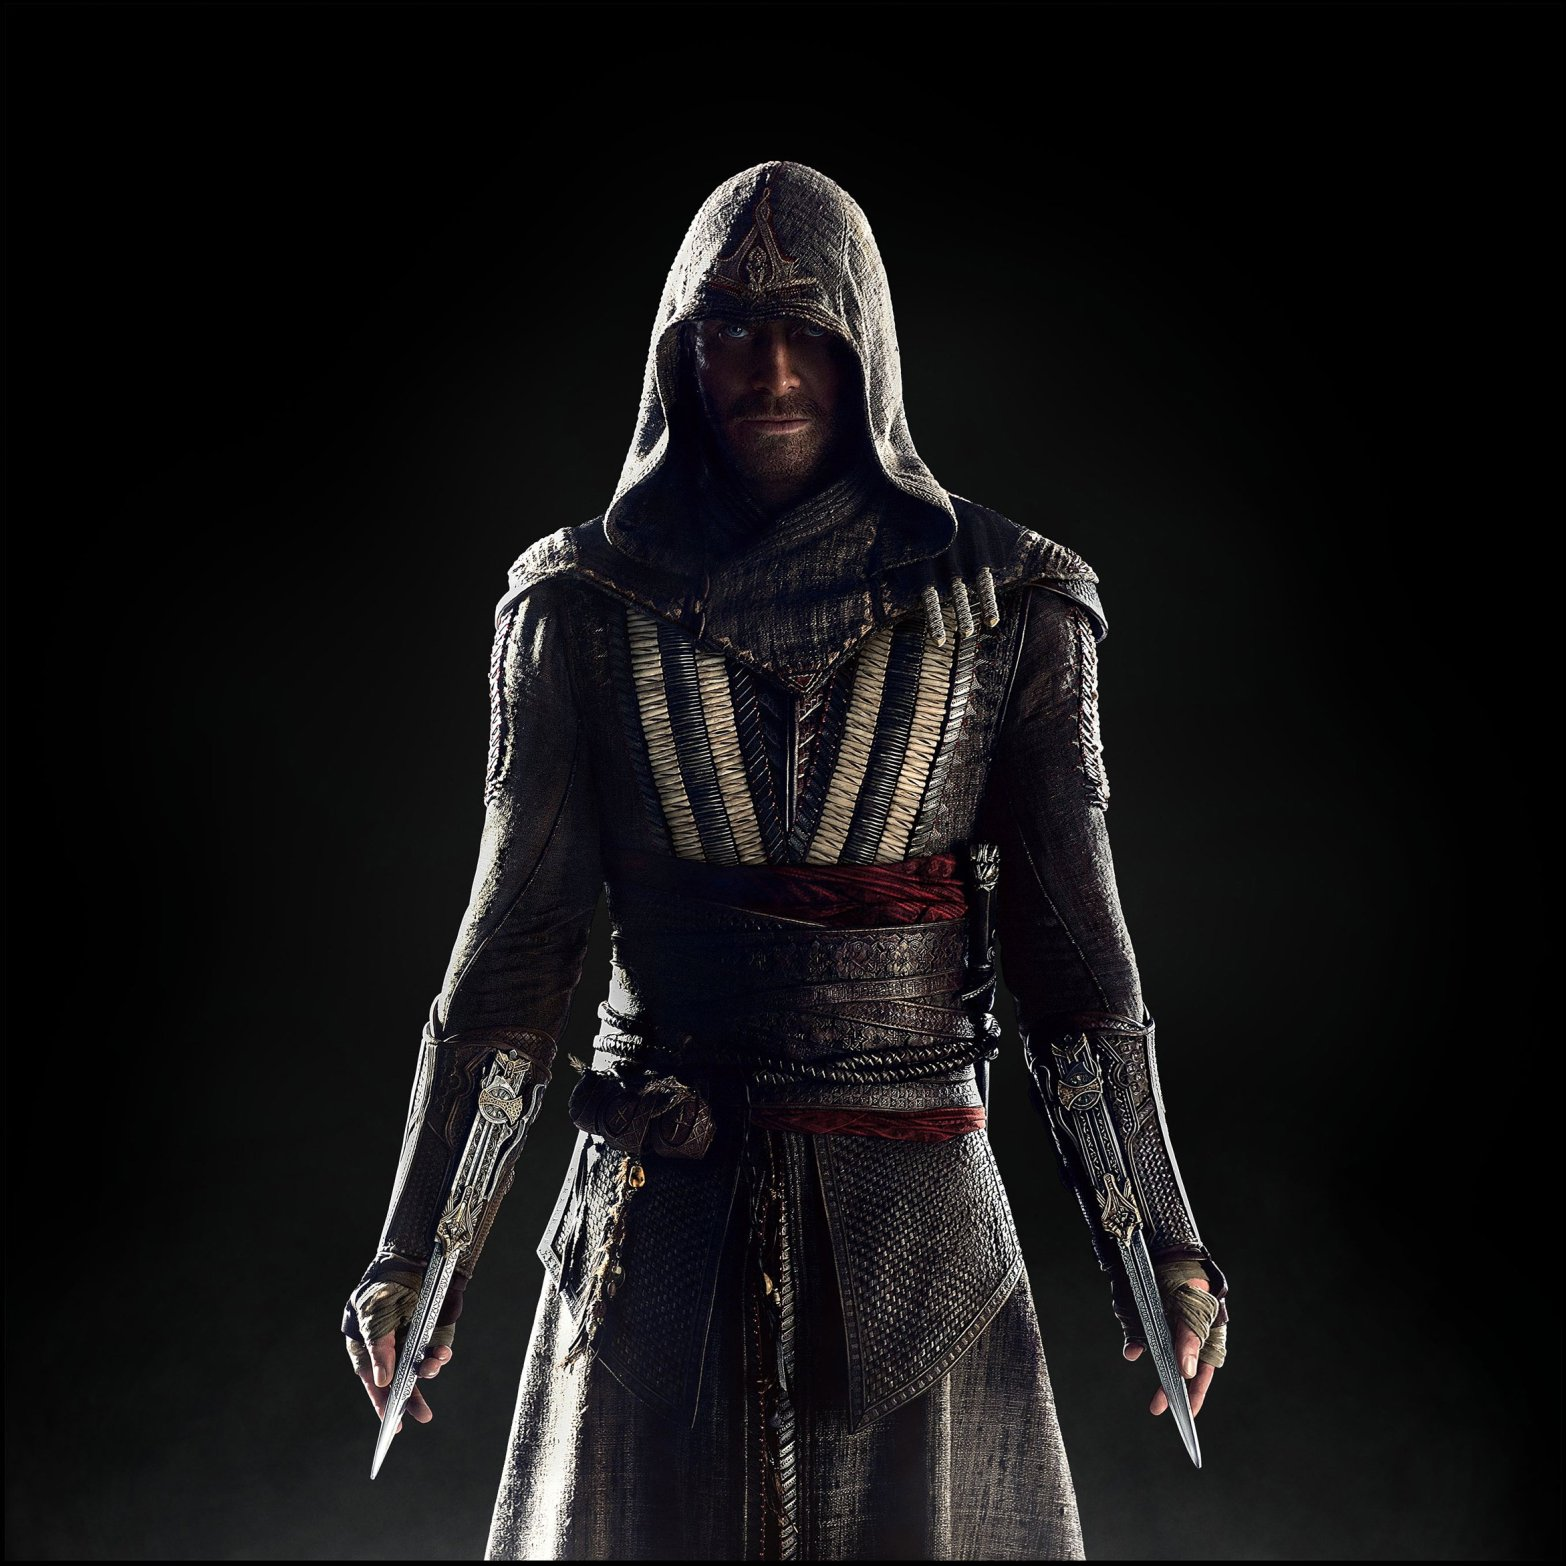 assassin-creed.jpg